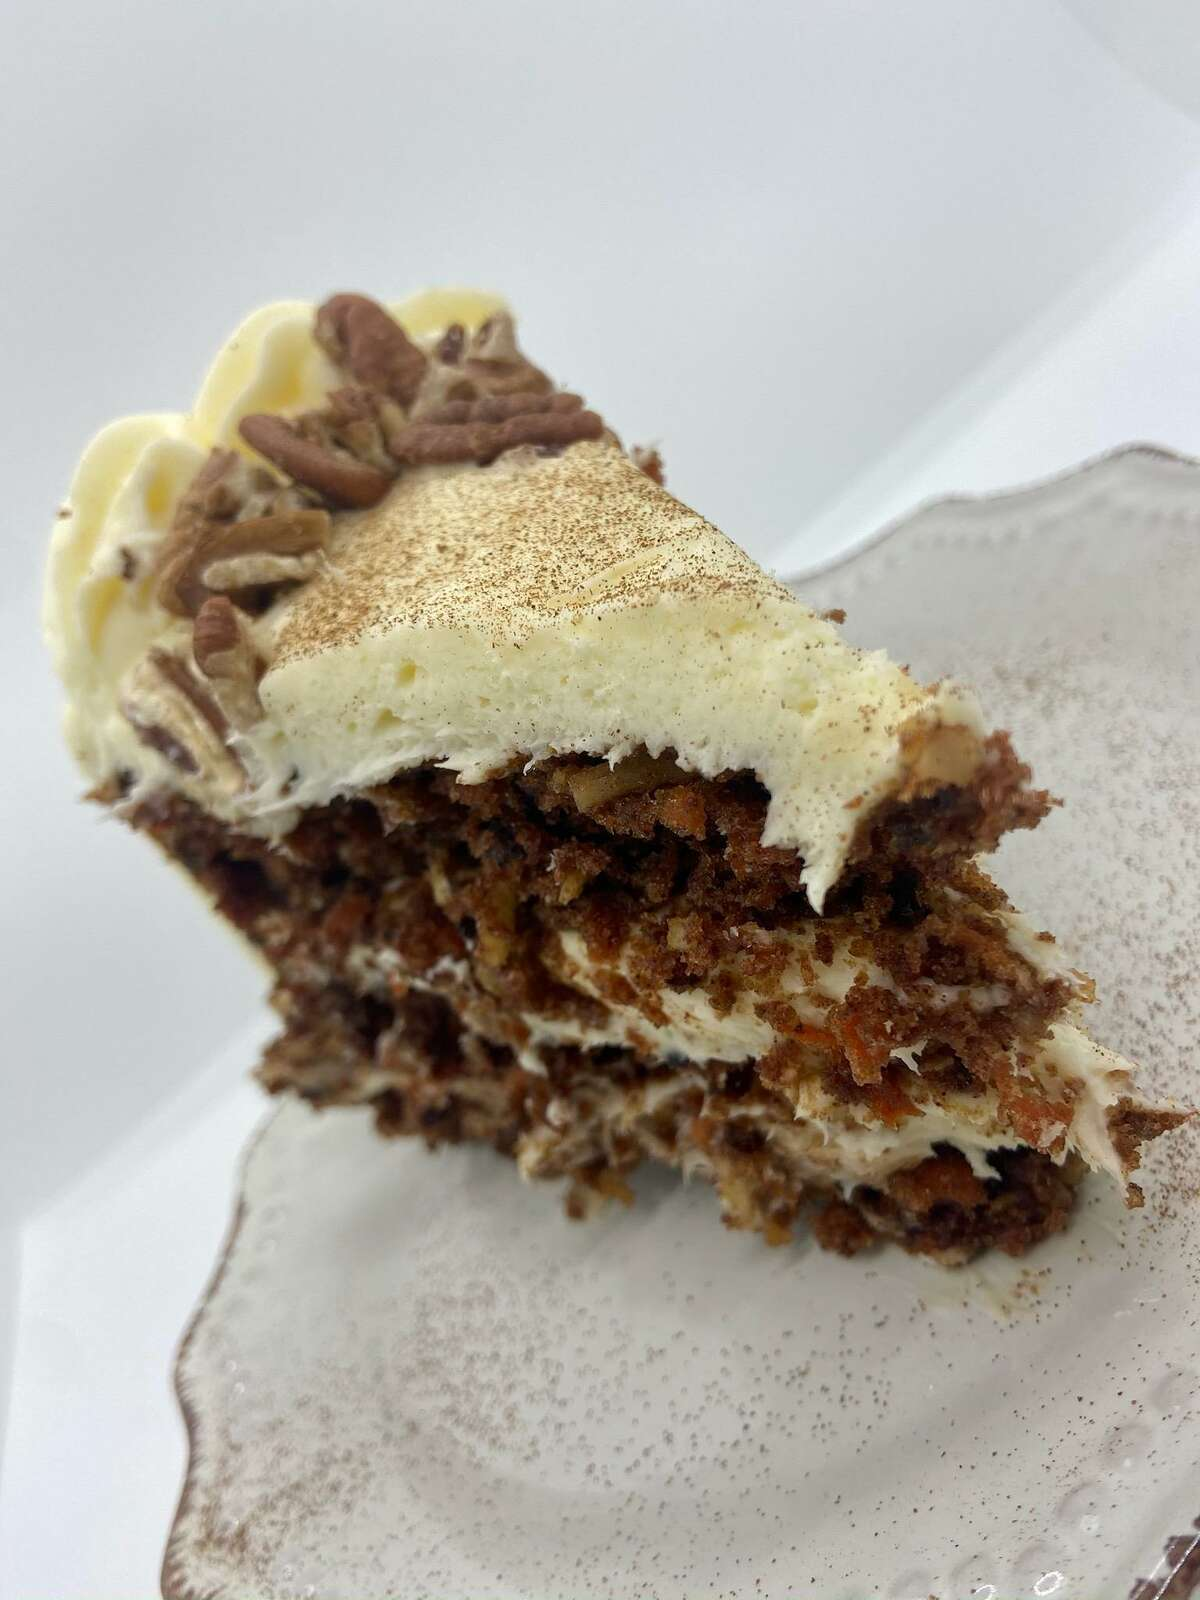 Harvest Kitchen & Bakery is located at 21971 Katy Freeway in Katy and serves delicious desserts like carrot cake.